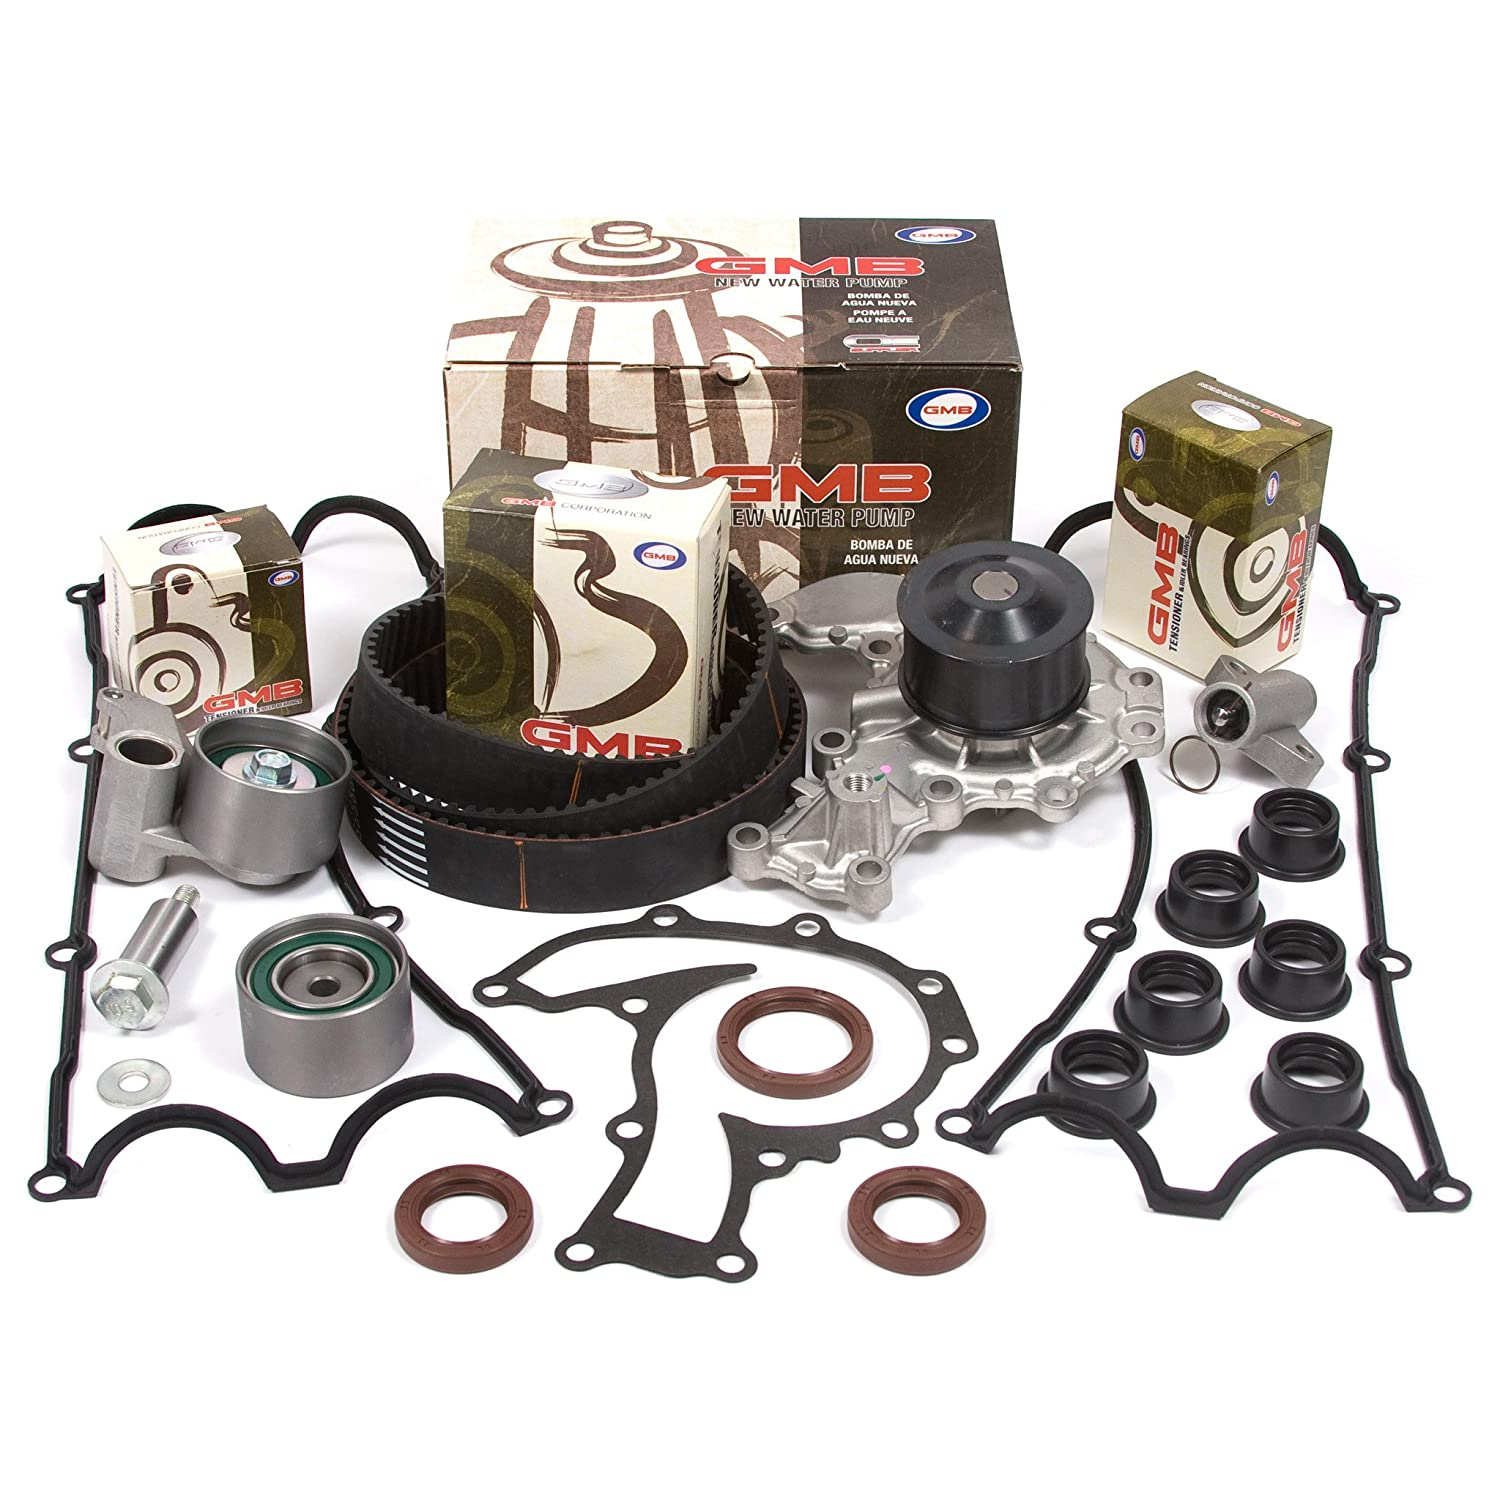 Fits 98-03 Acura Honda Isuzu 3.2 DOHC 24V 6VD1 3.5 DOHC 24V 6VE1 Timing Belt Kit w//Hydraulic Tensioner GMB Water Pump Valve Cover Gasket